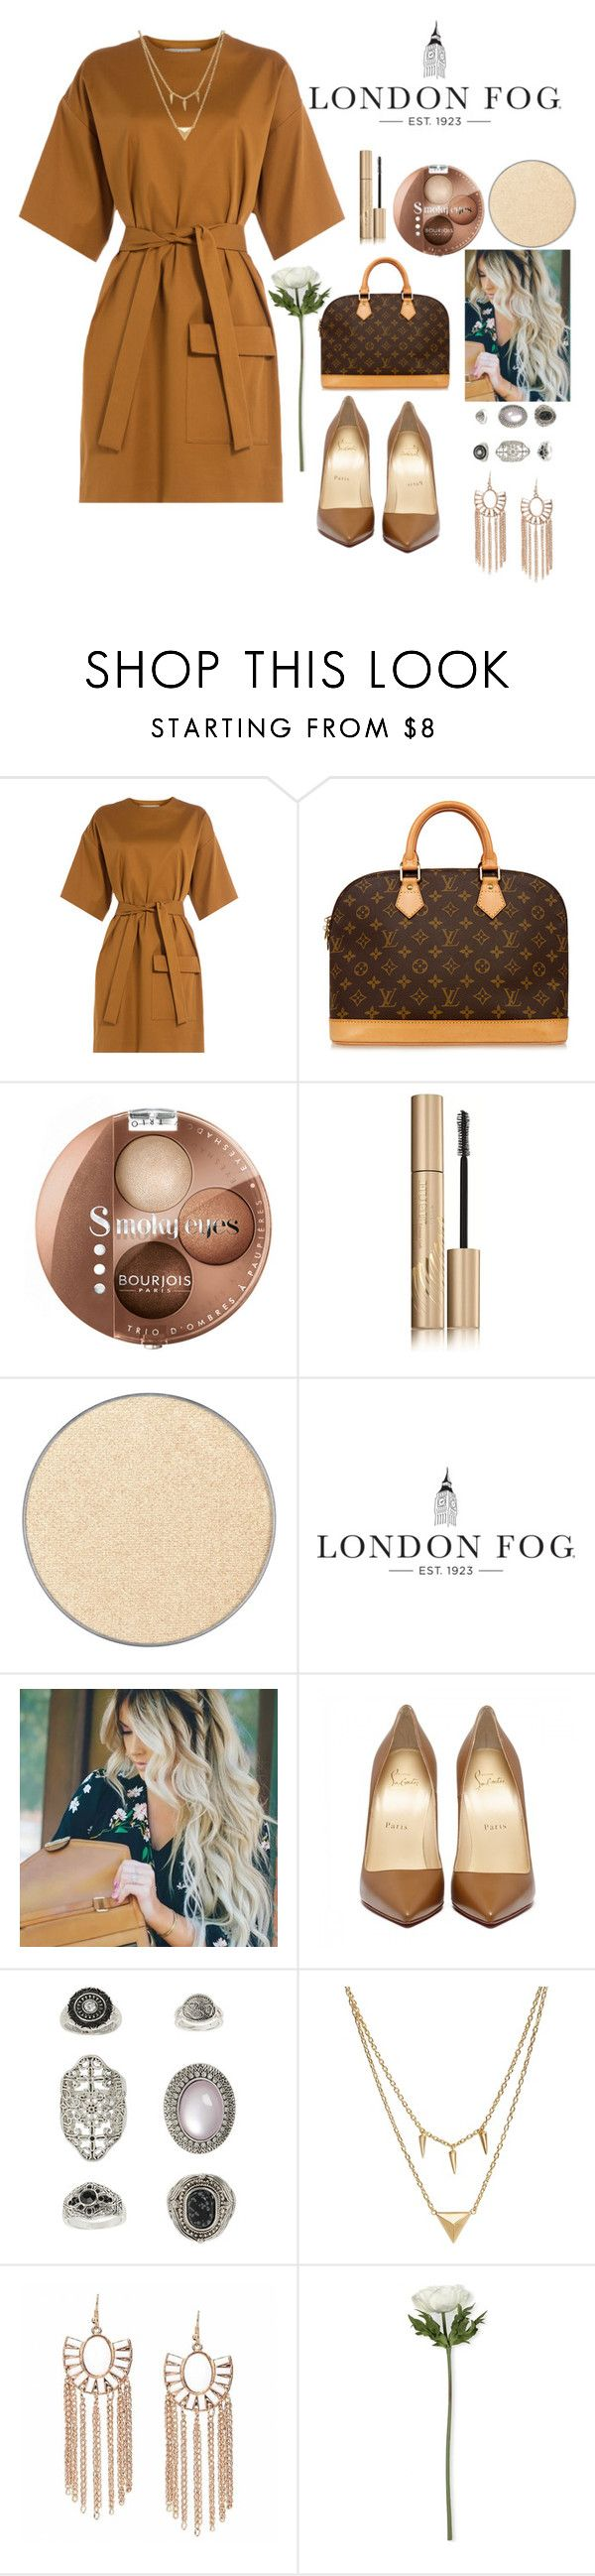 """""""nice."""" by remooooo ❤ liked on Polyvore featuring MSGM, Louis Vuitton, Bourjois, Stila, Anastasia Beverly Hills, London Fog, Topshop, Edge of Ember and Sia"""